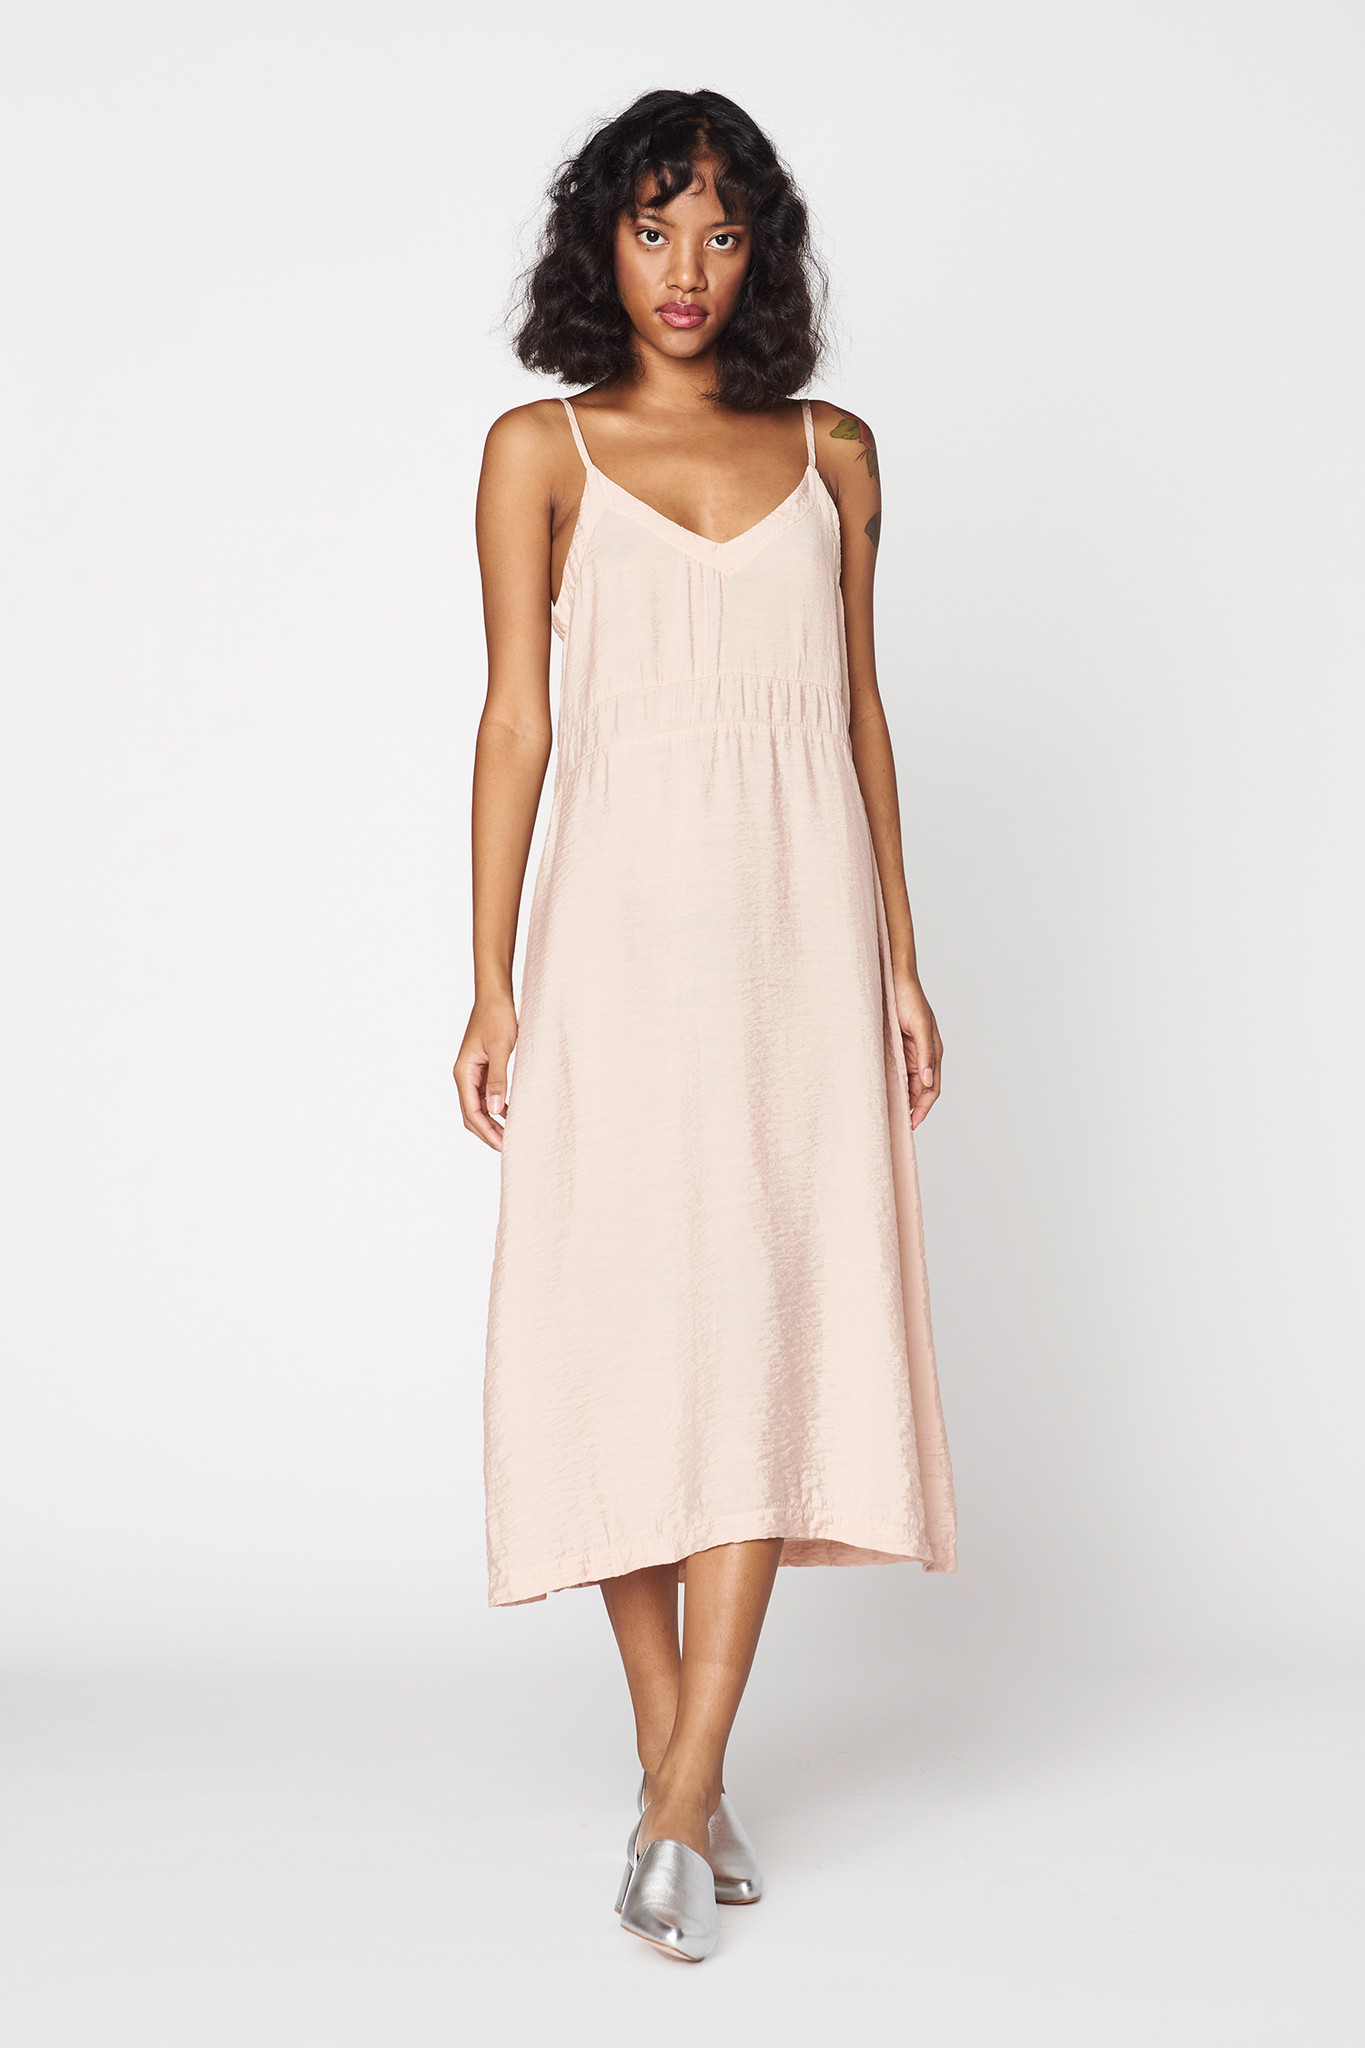 Where to buy a slip for a dress